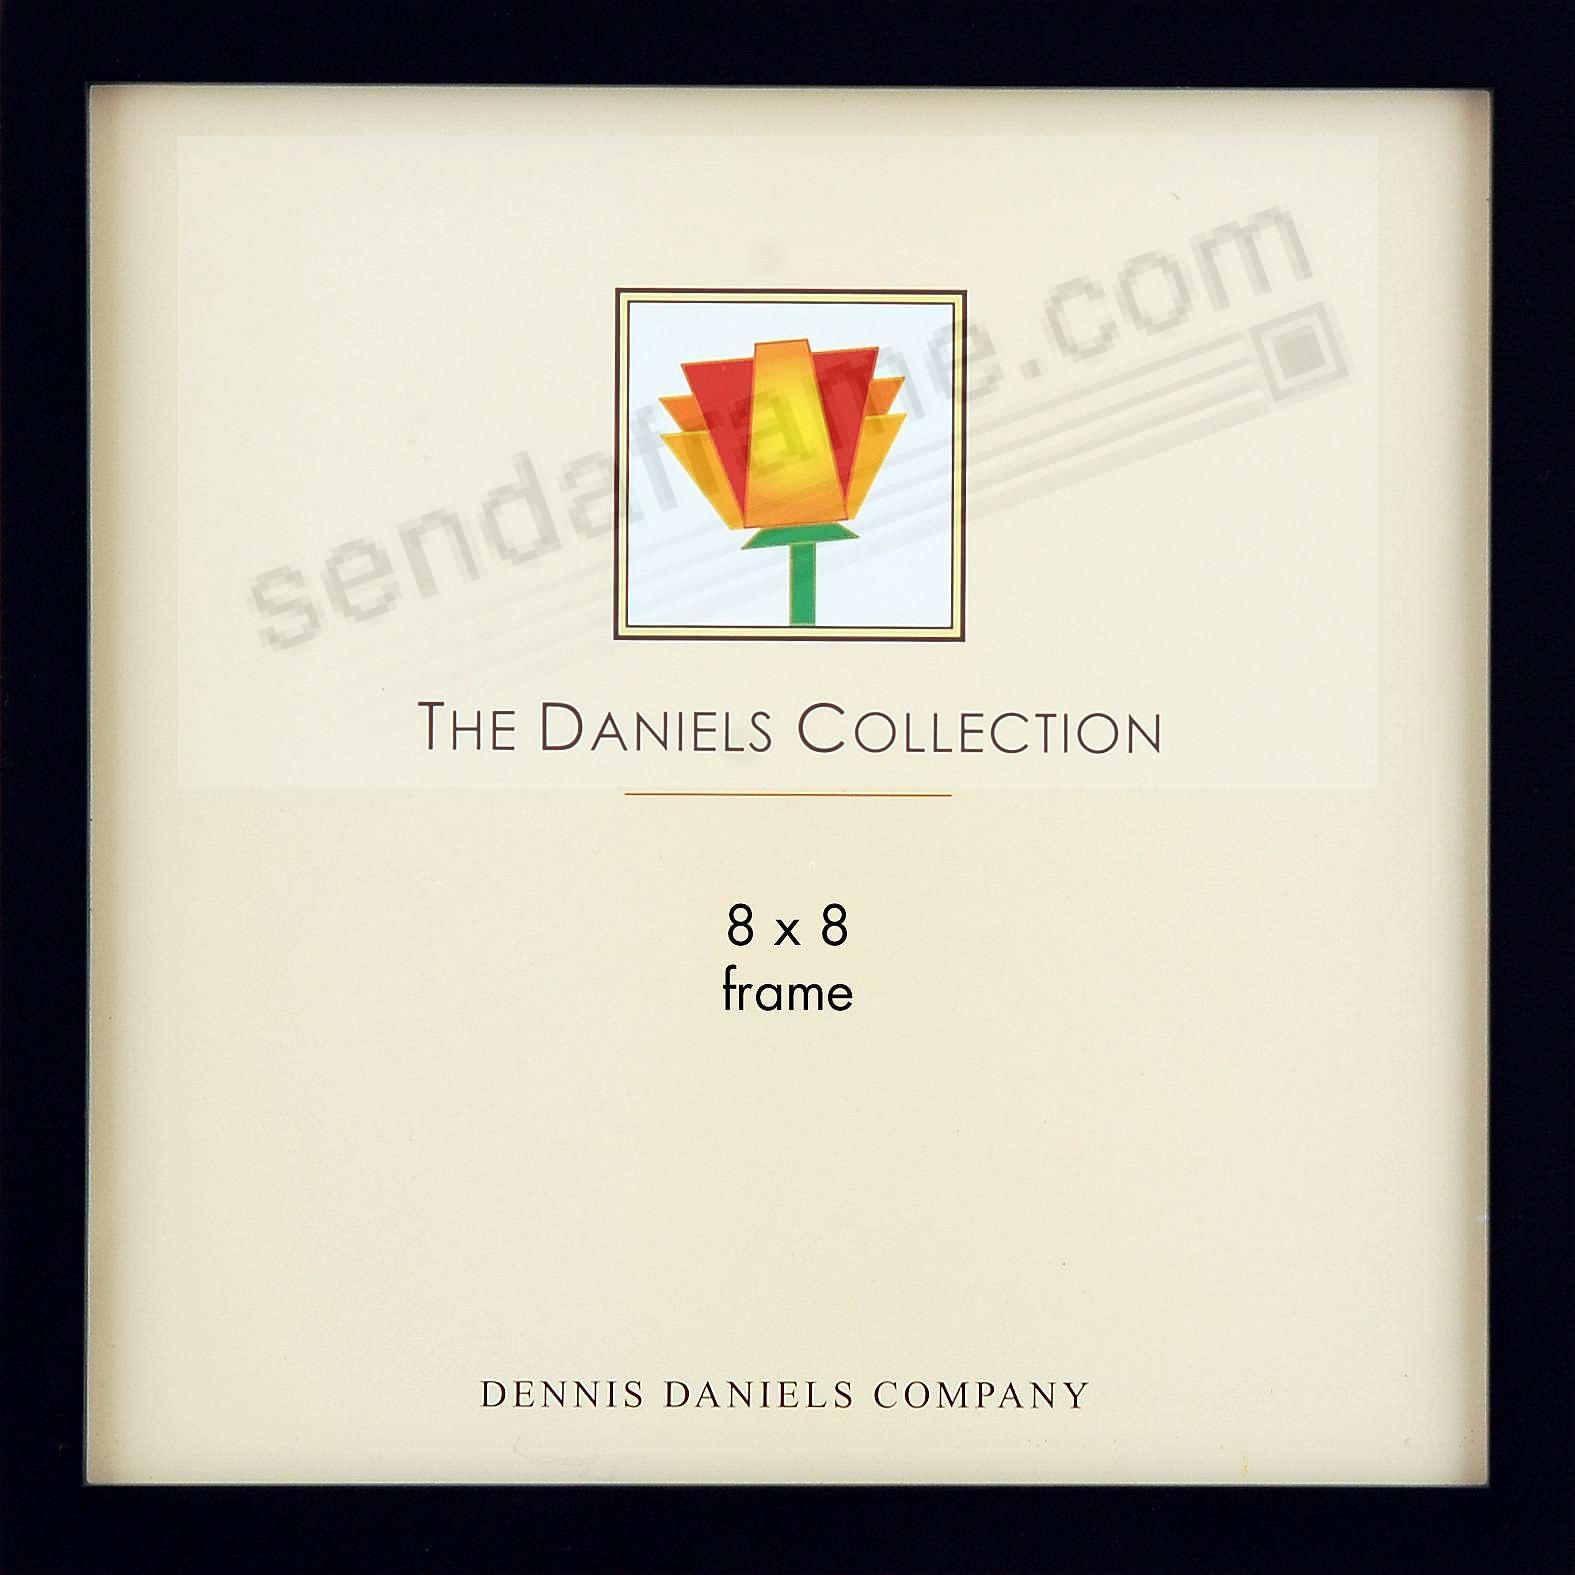 The Original DANIELS W41: Square Corner GALLERY WOODS Ebony-Black finish 8x8 frame by Dennis Daniels®